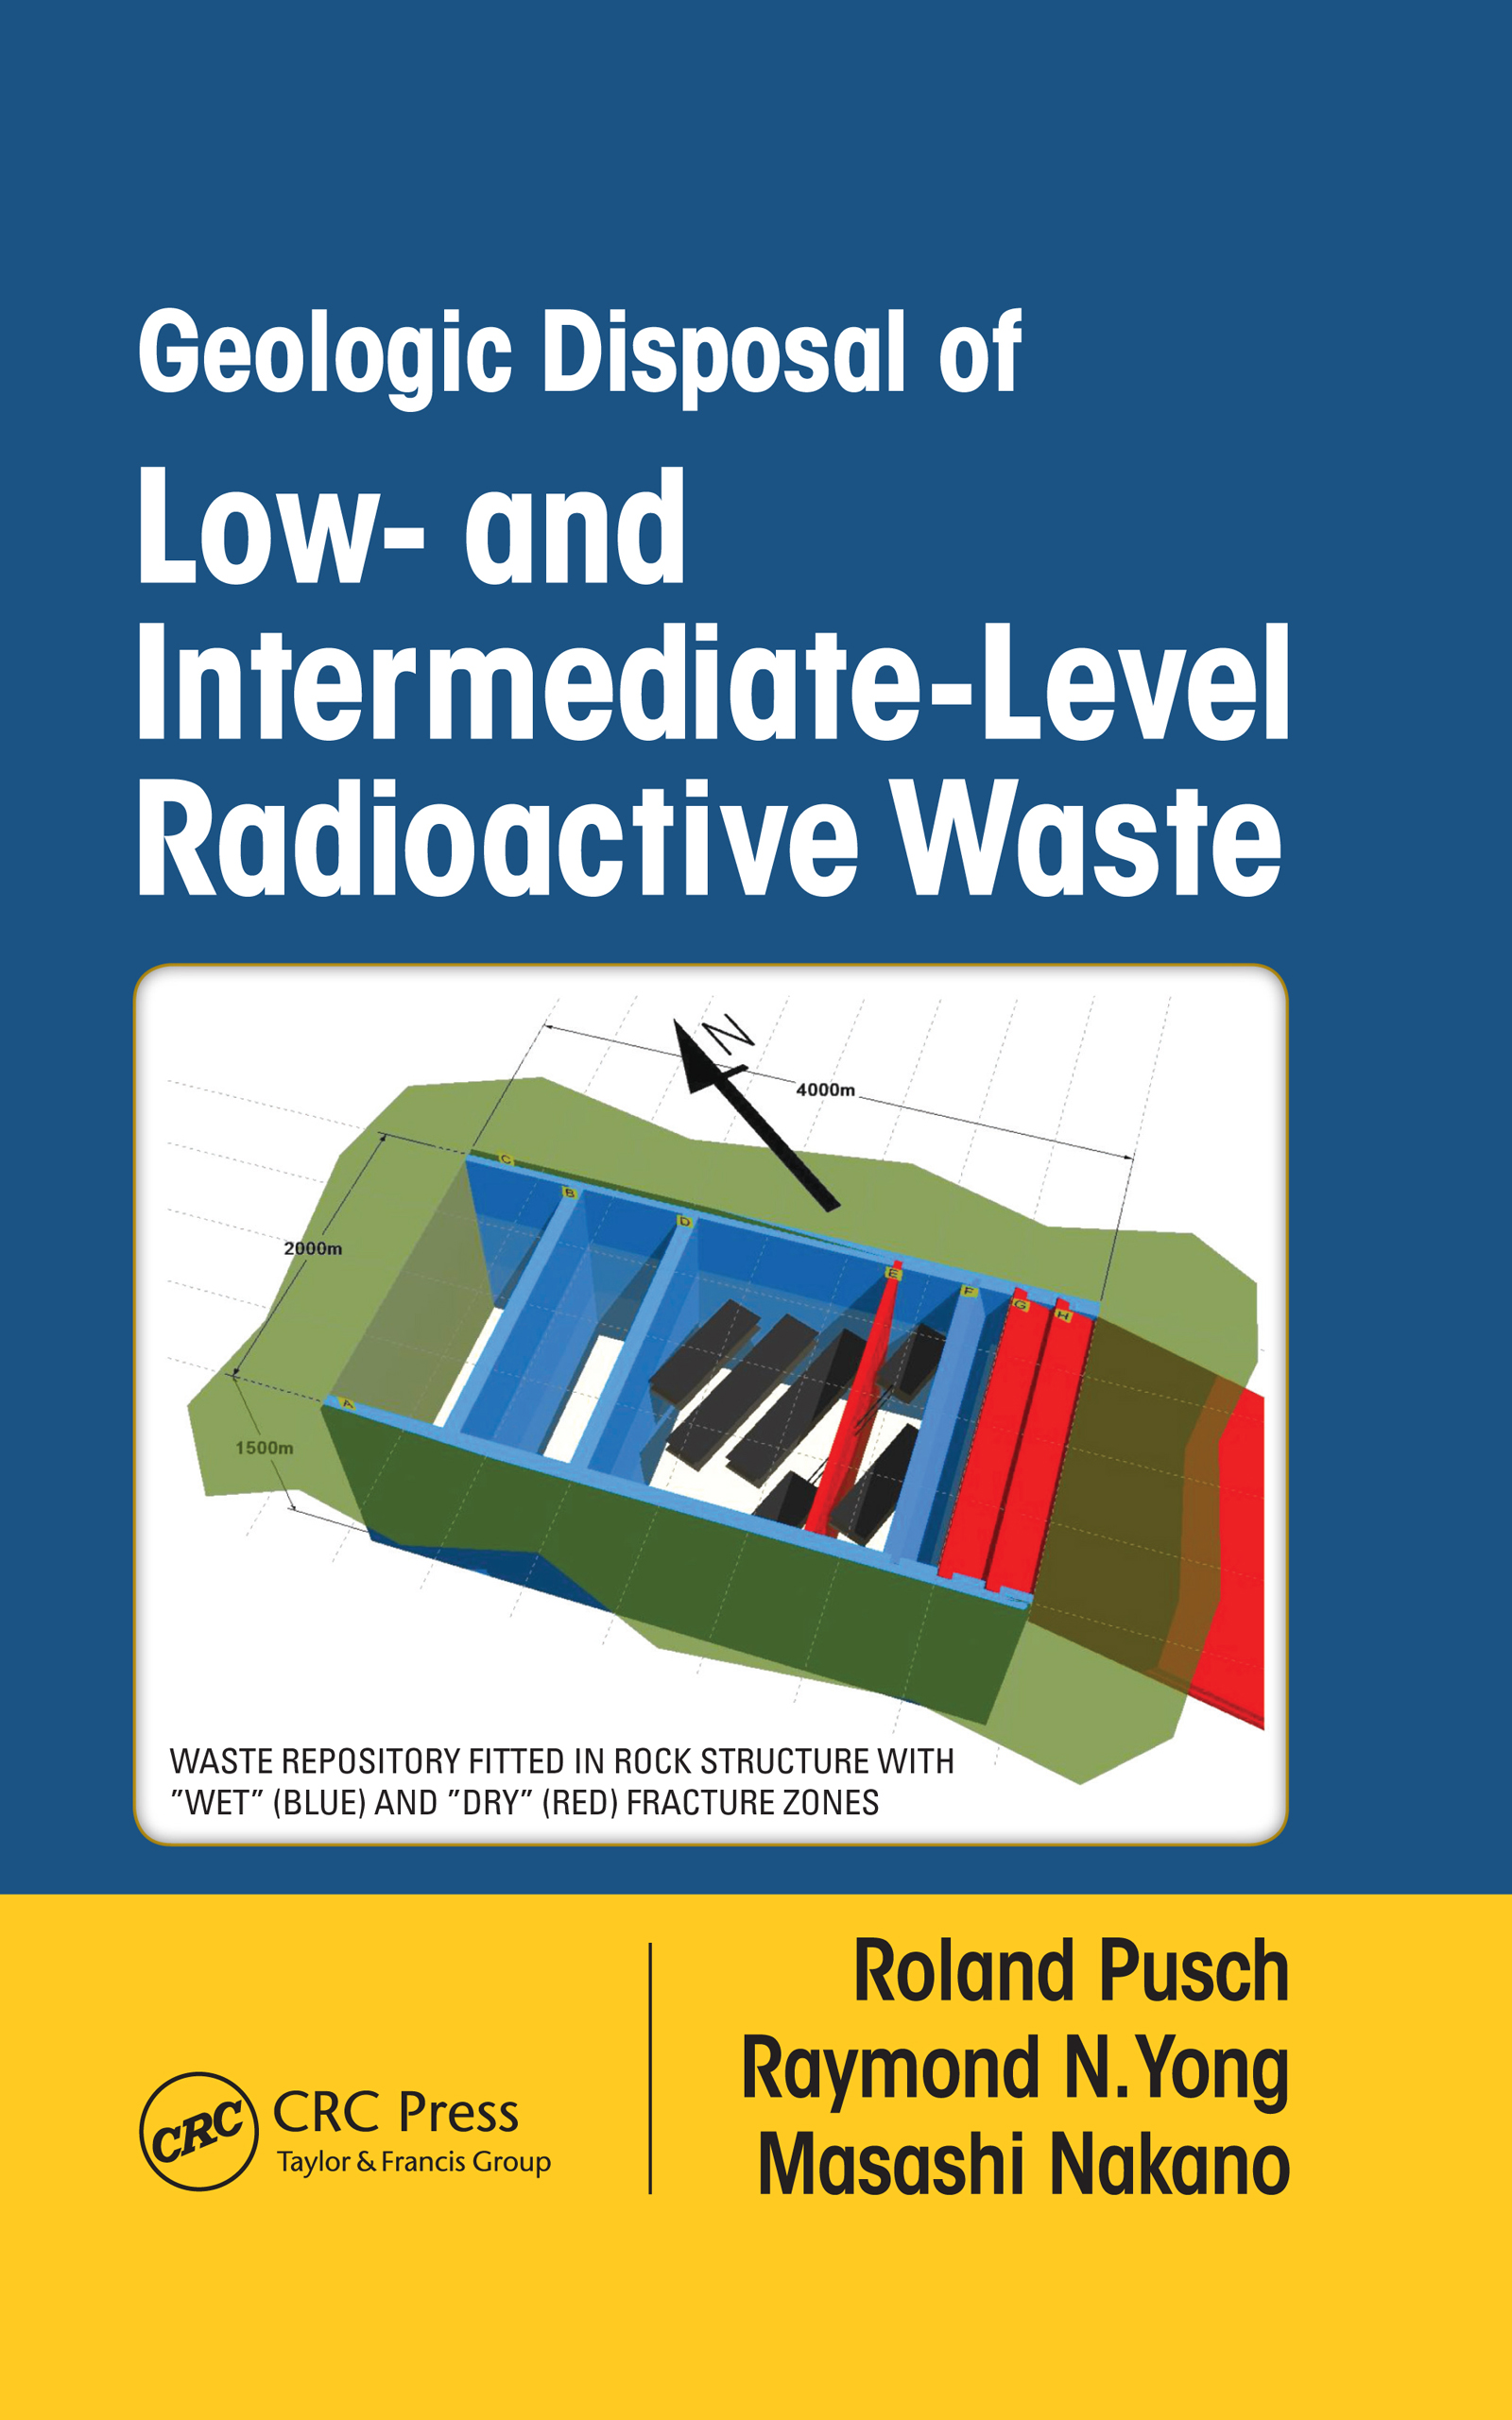 Geologic Disposal of Low- and Intermediate-Level Radioactive Waste